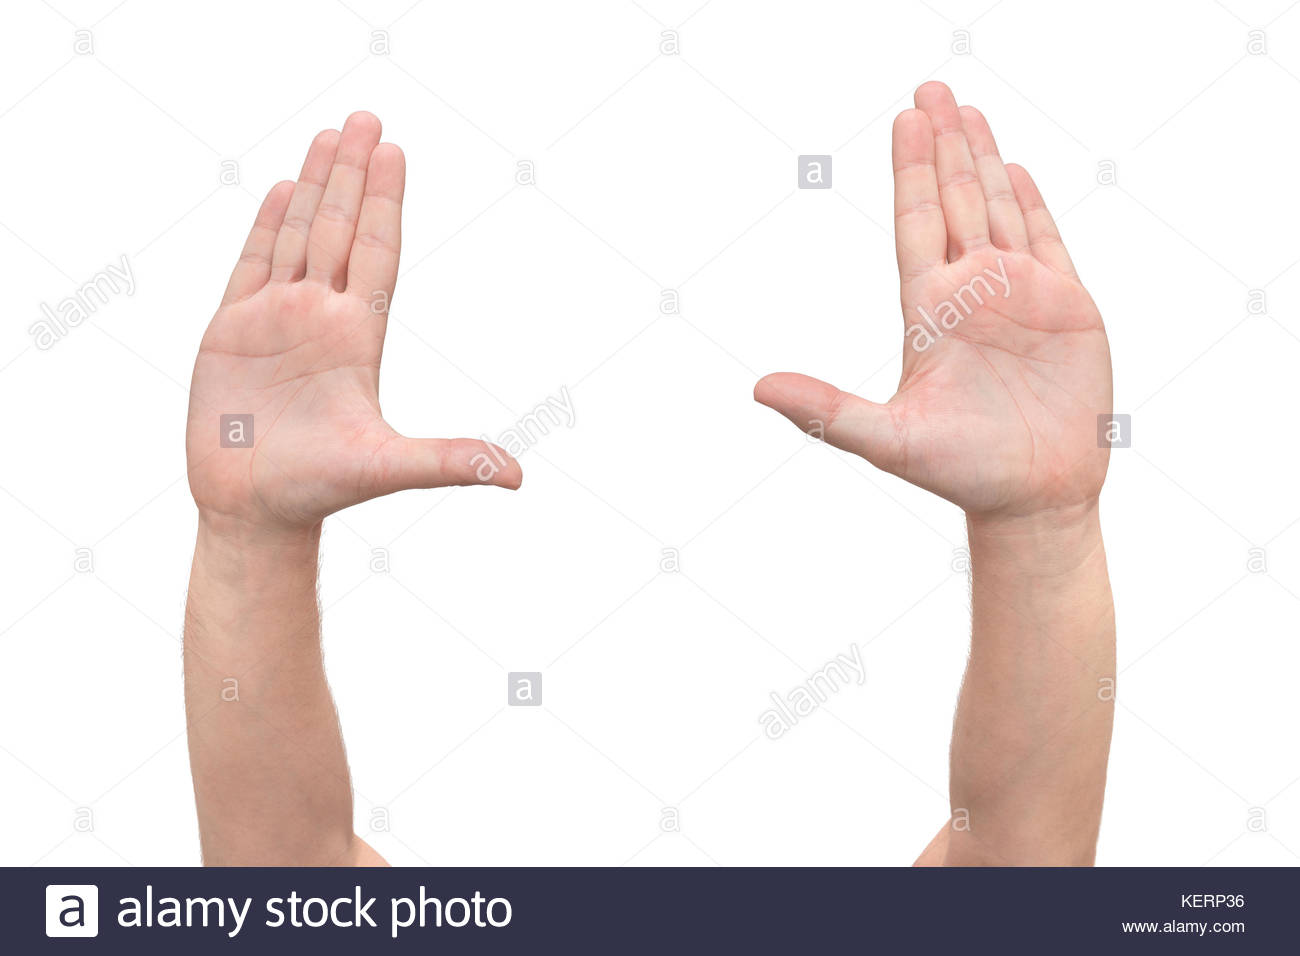 Two hands symbol that means stop on white background front view two hands symbol that means stop on white background front view buycottarizona Choice Image